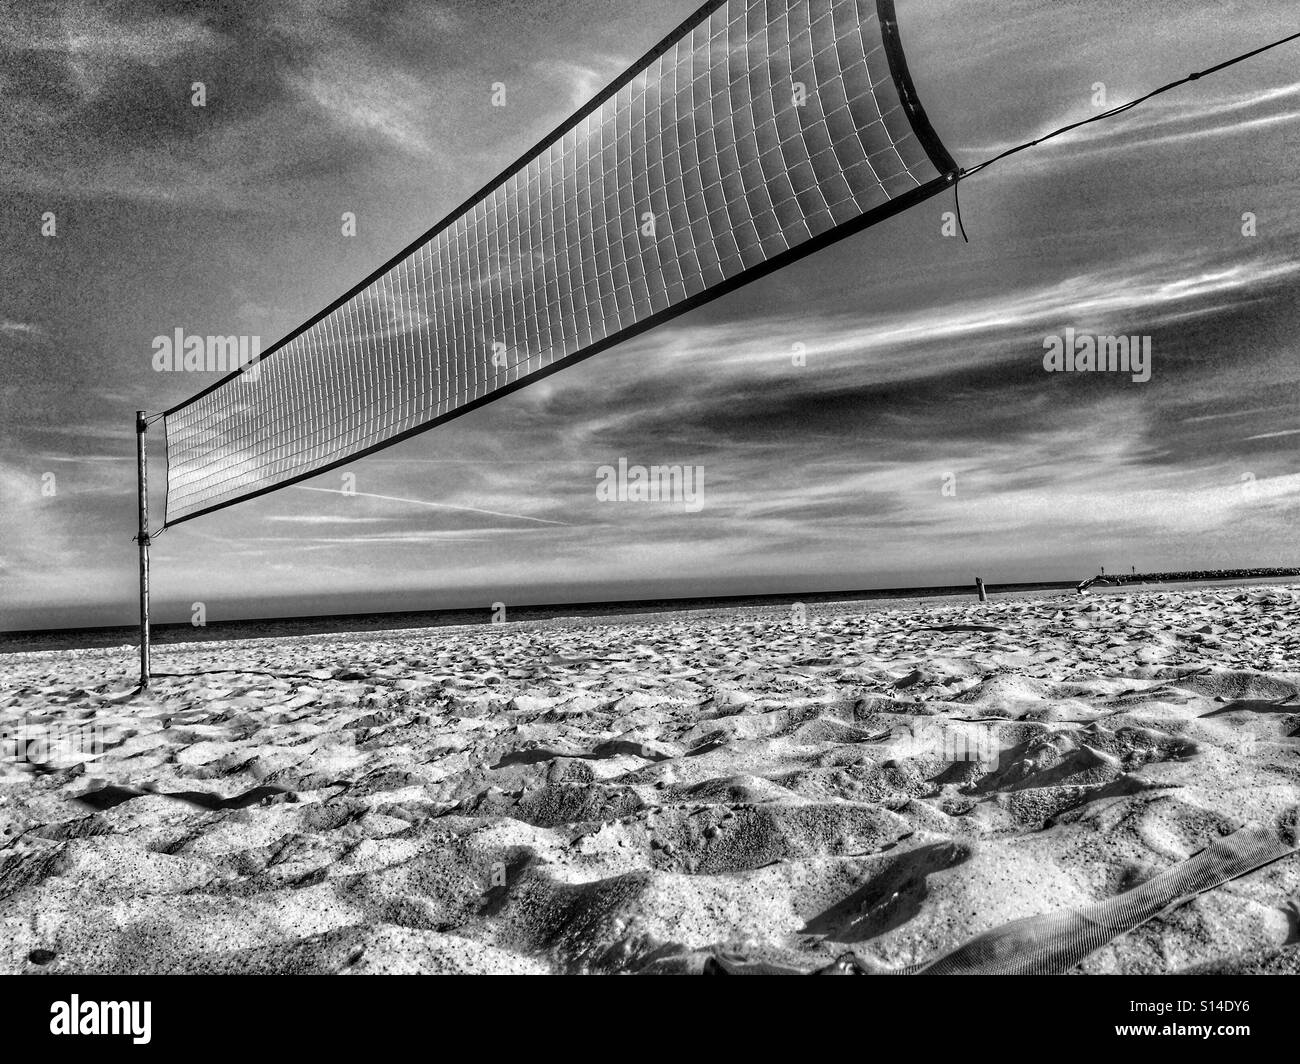 Beachvolleyball grid on a beach - Stock Image